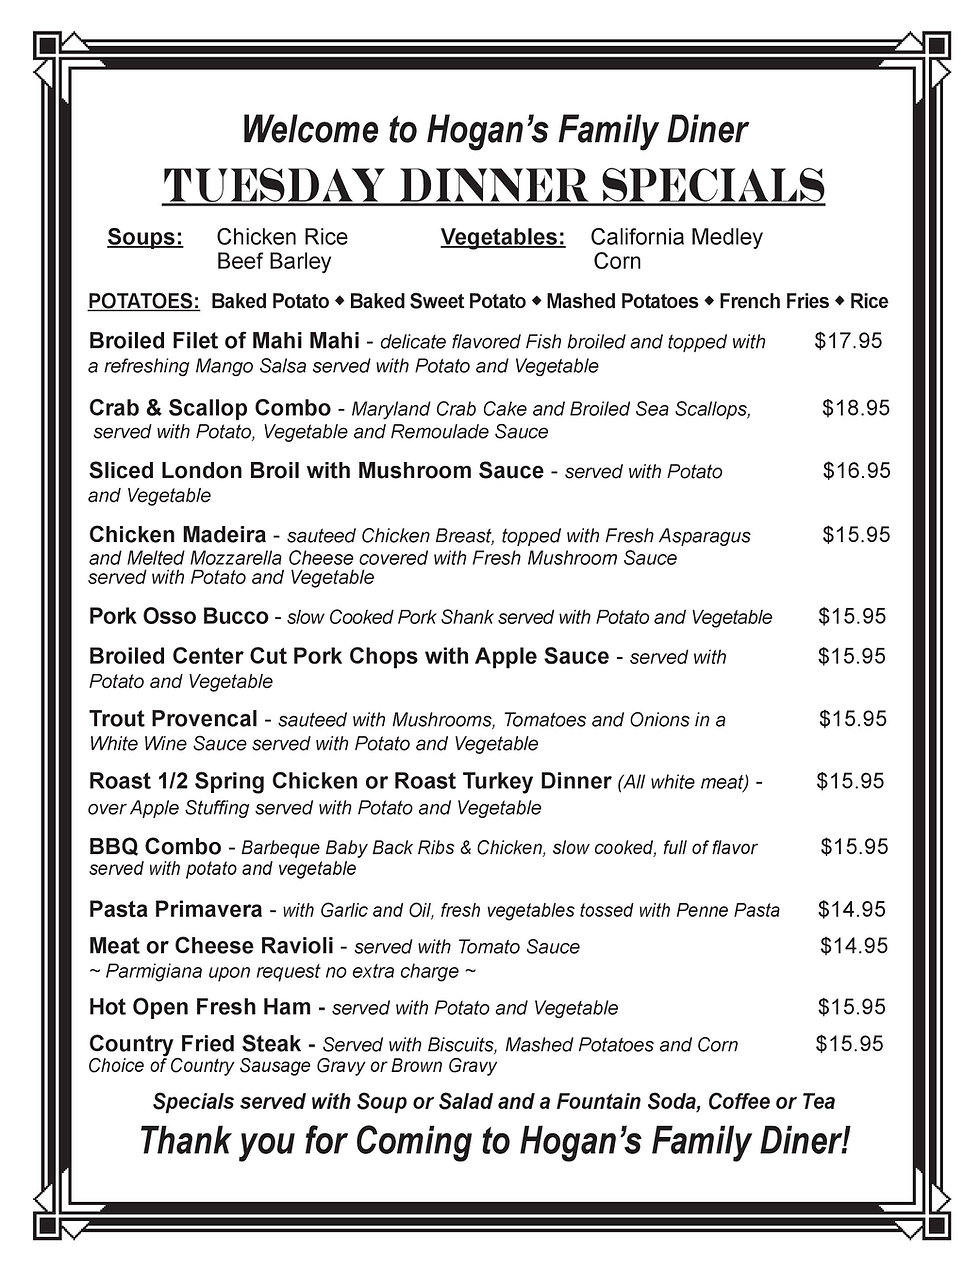 Dinner Tuesday 2021-page-001.jpg